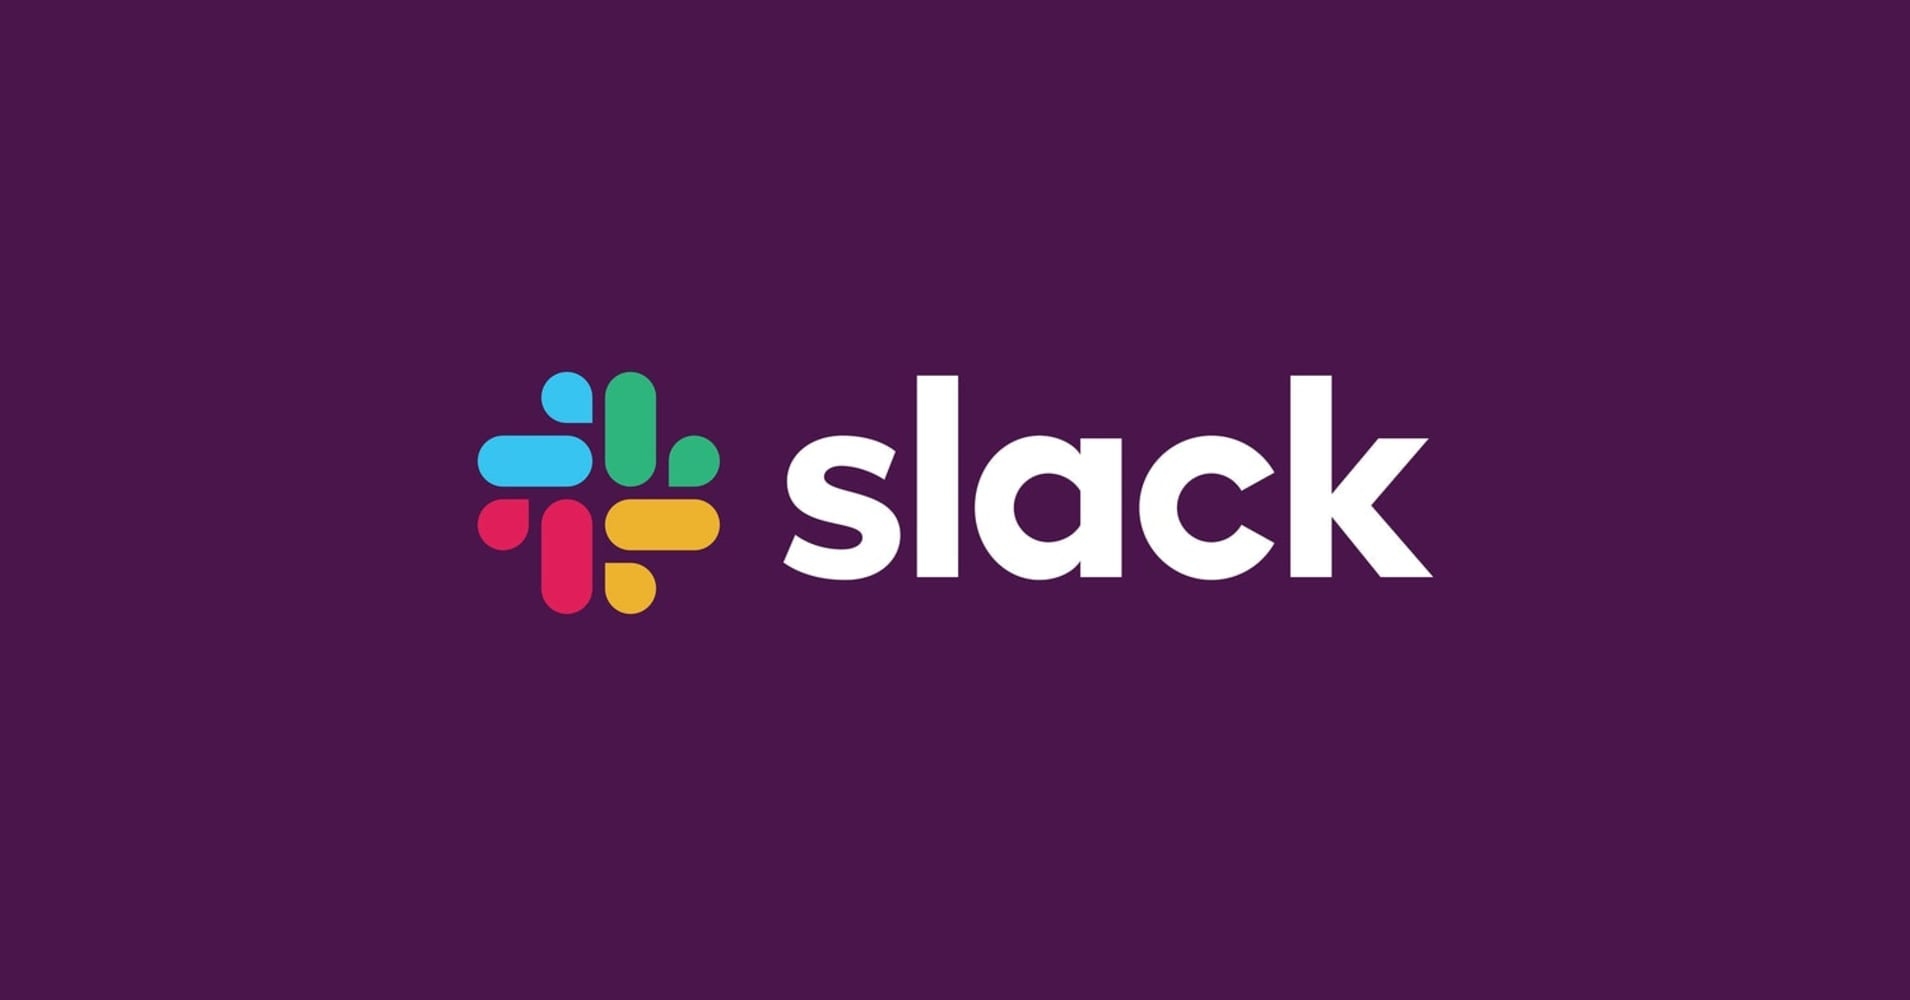 cnbc.com - Lucy Handley - Slack has a new logo because the last one was 'simply awful